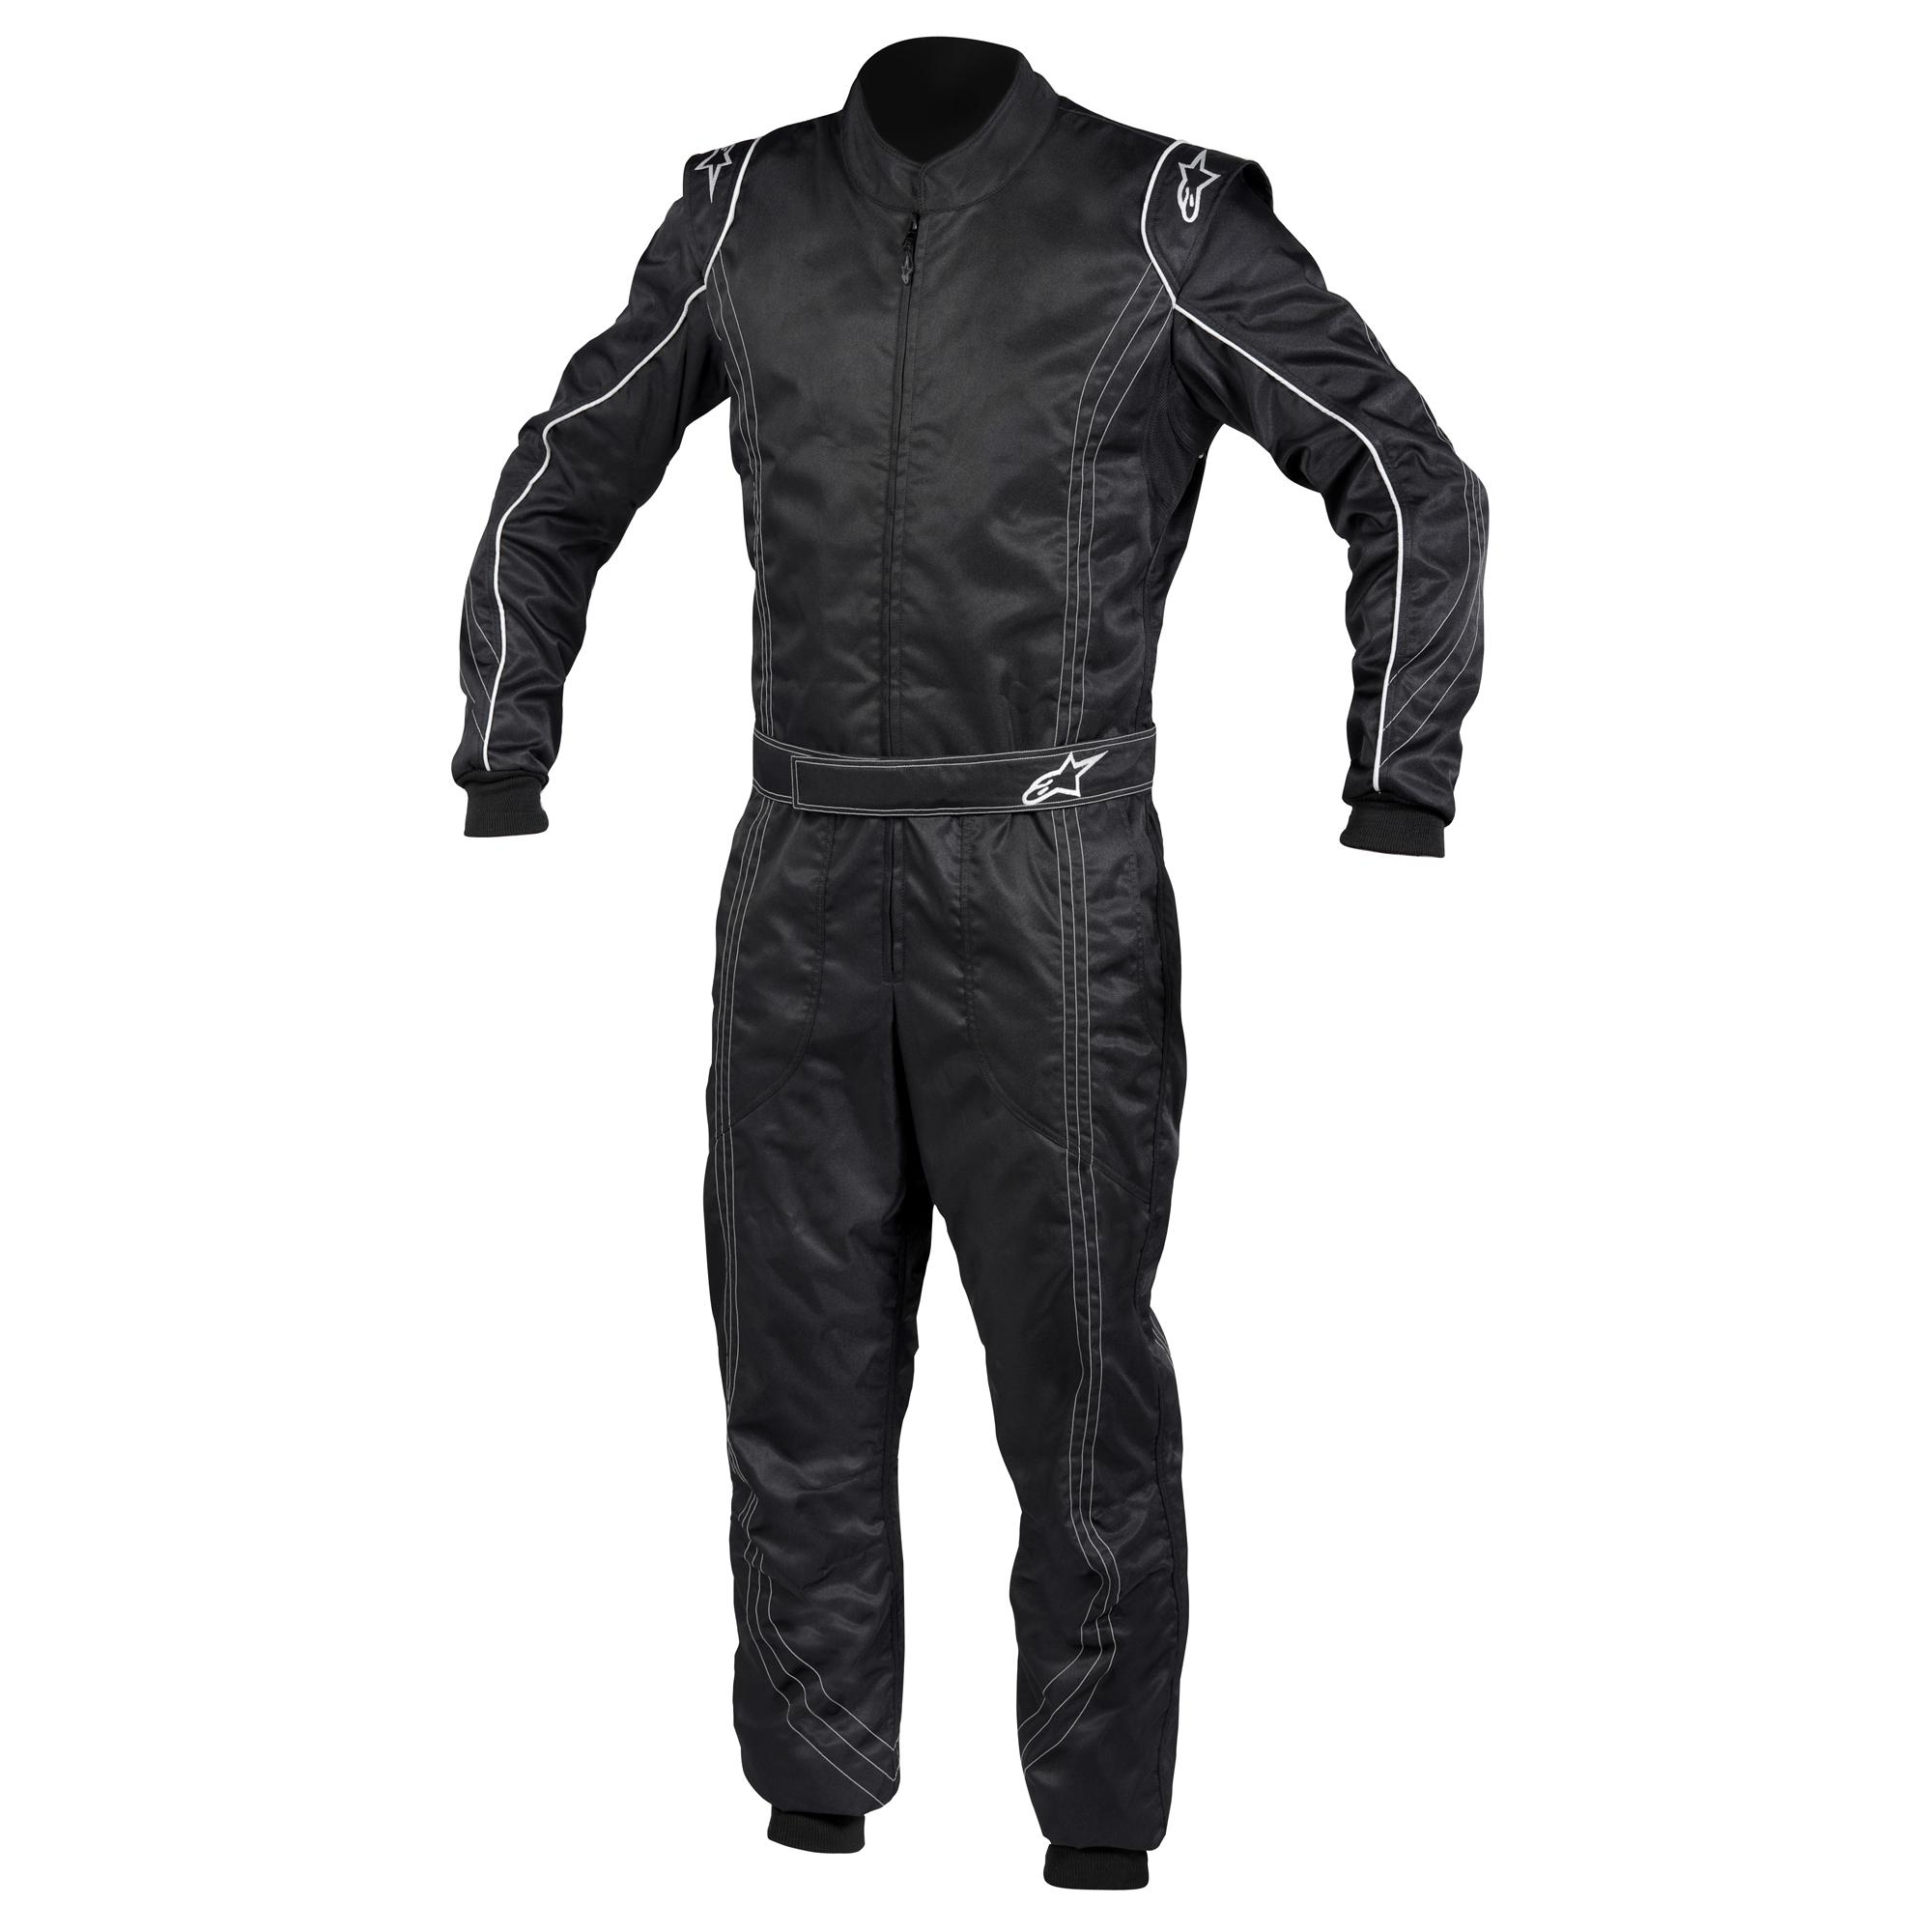 Alpinestars K-MX 9 Kart Suit Black